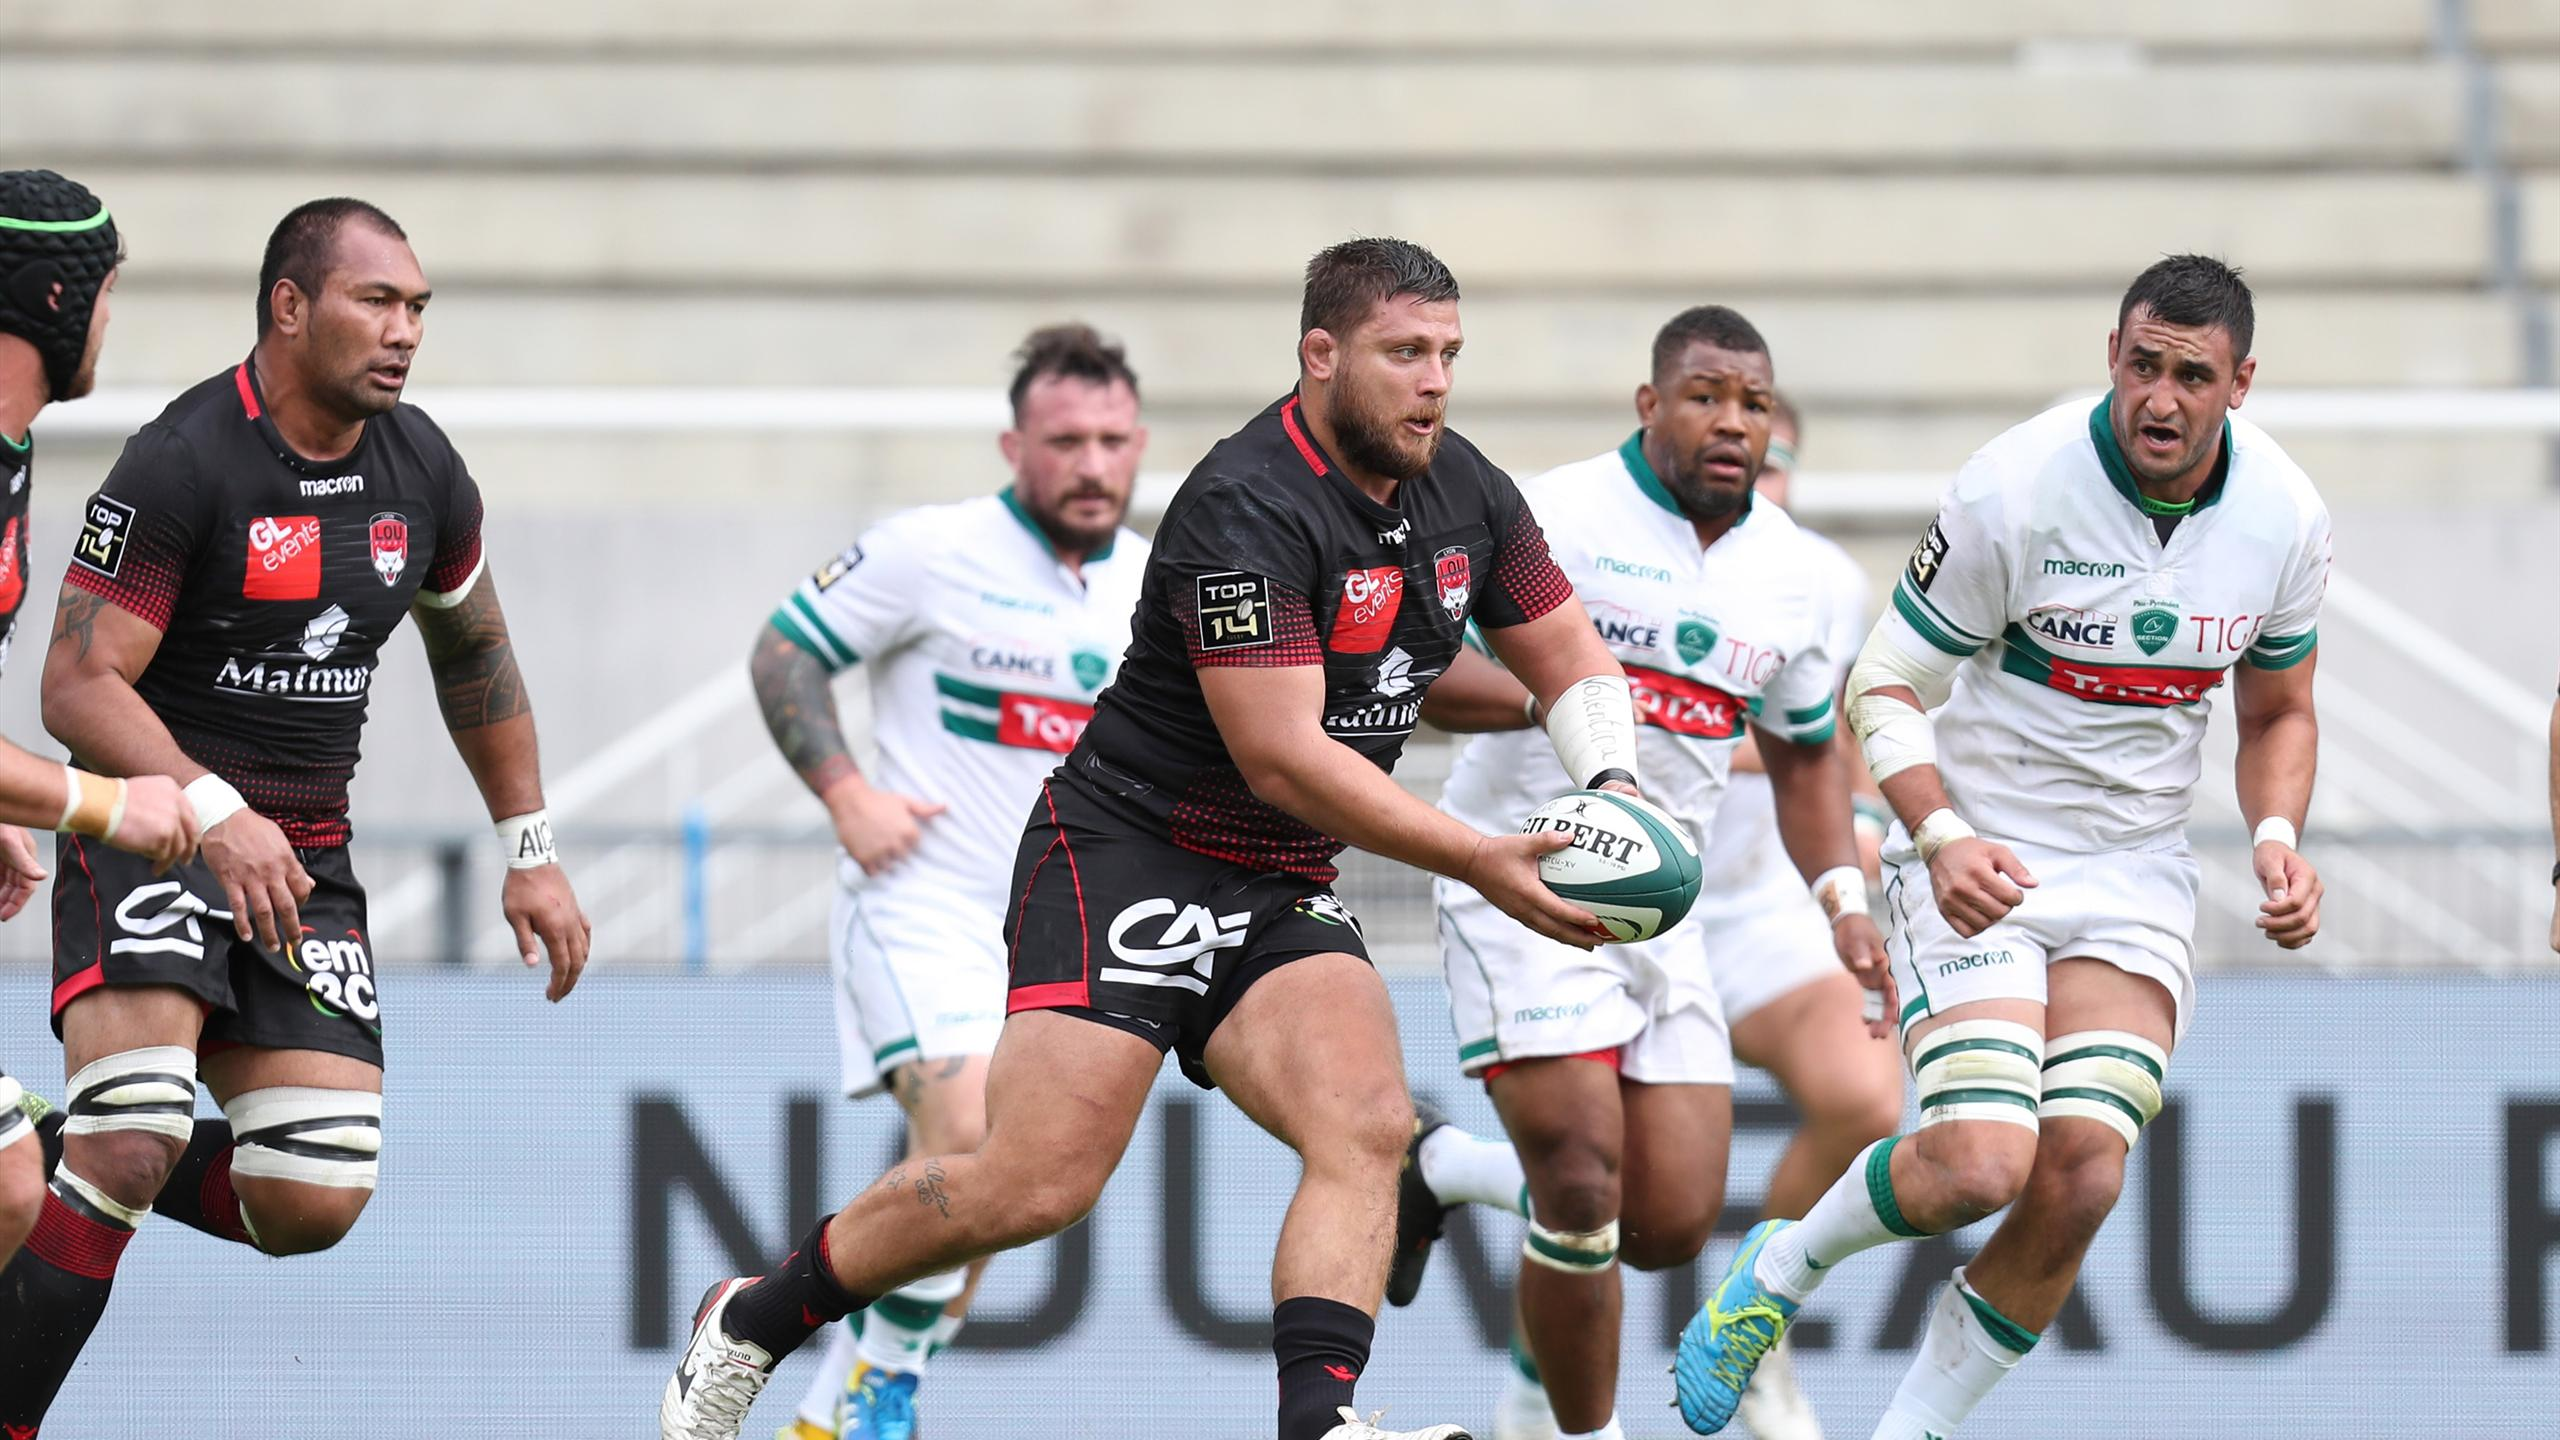 Calendrier 2020 Rugby.Le Calendrier 2019 2020 Beauxis A Oyonnax Les 5 Infos Qu